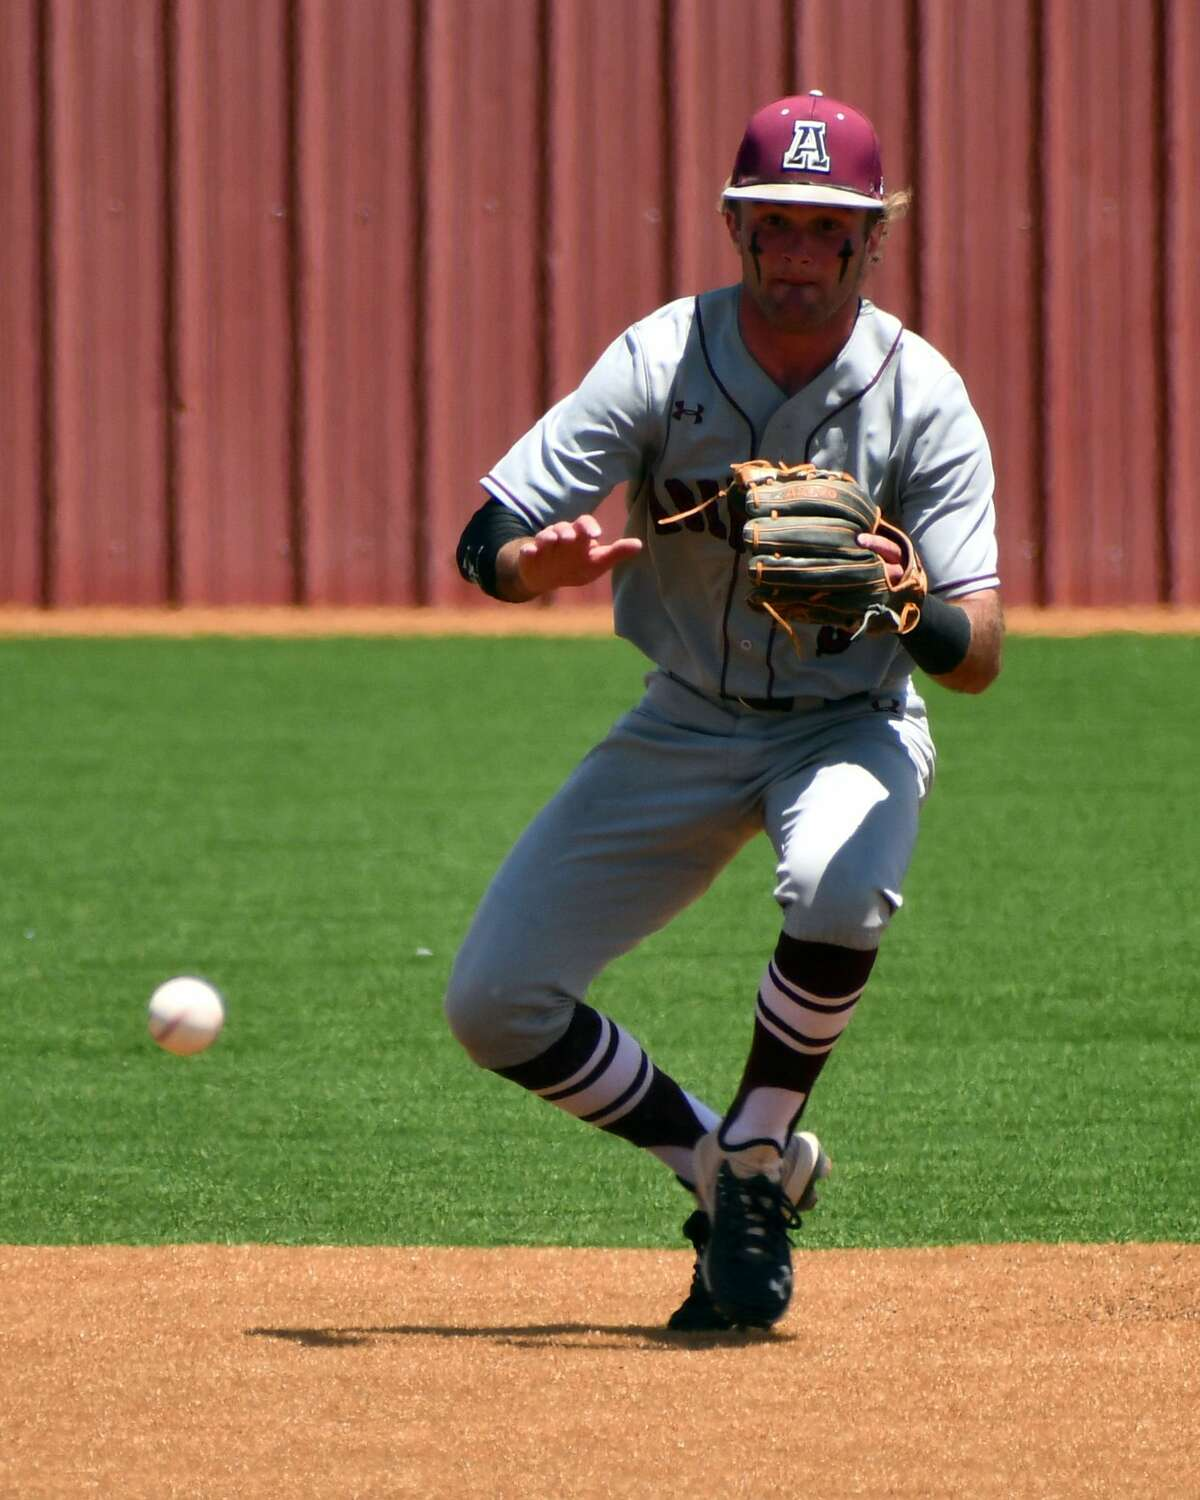 Abernathy shortstop Jess Hoel earned first team All-State honors in Class 3A from the Texas High School Baseball Coaches Association.